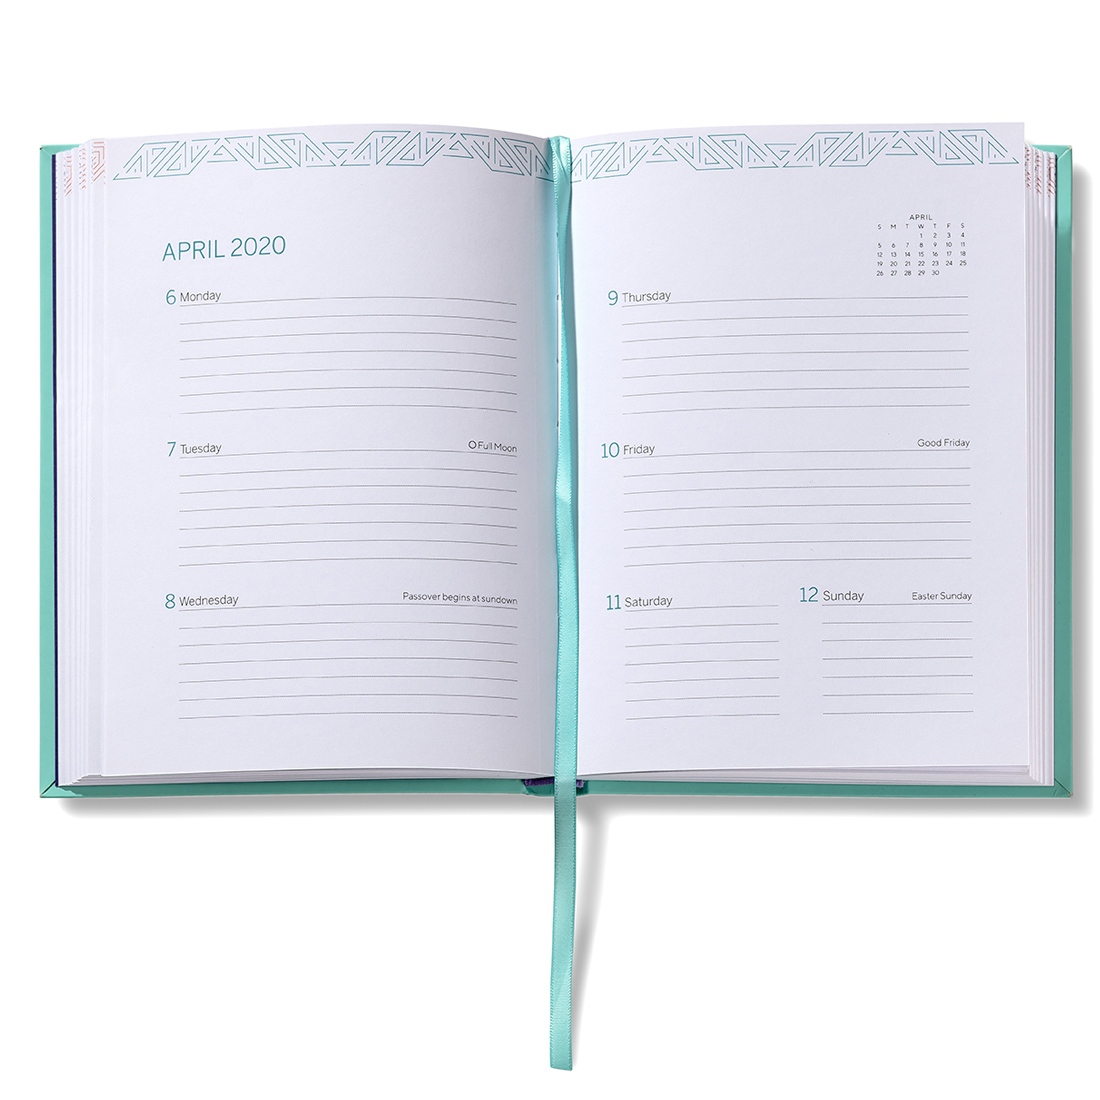 High_Note_Geometric_WeeklyPlanner5.jpg